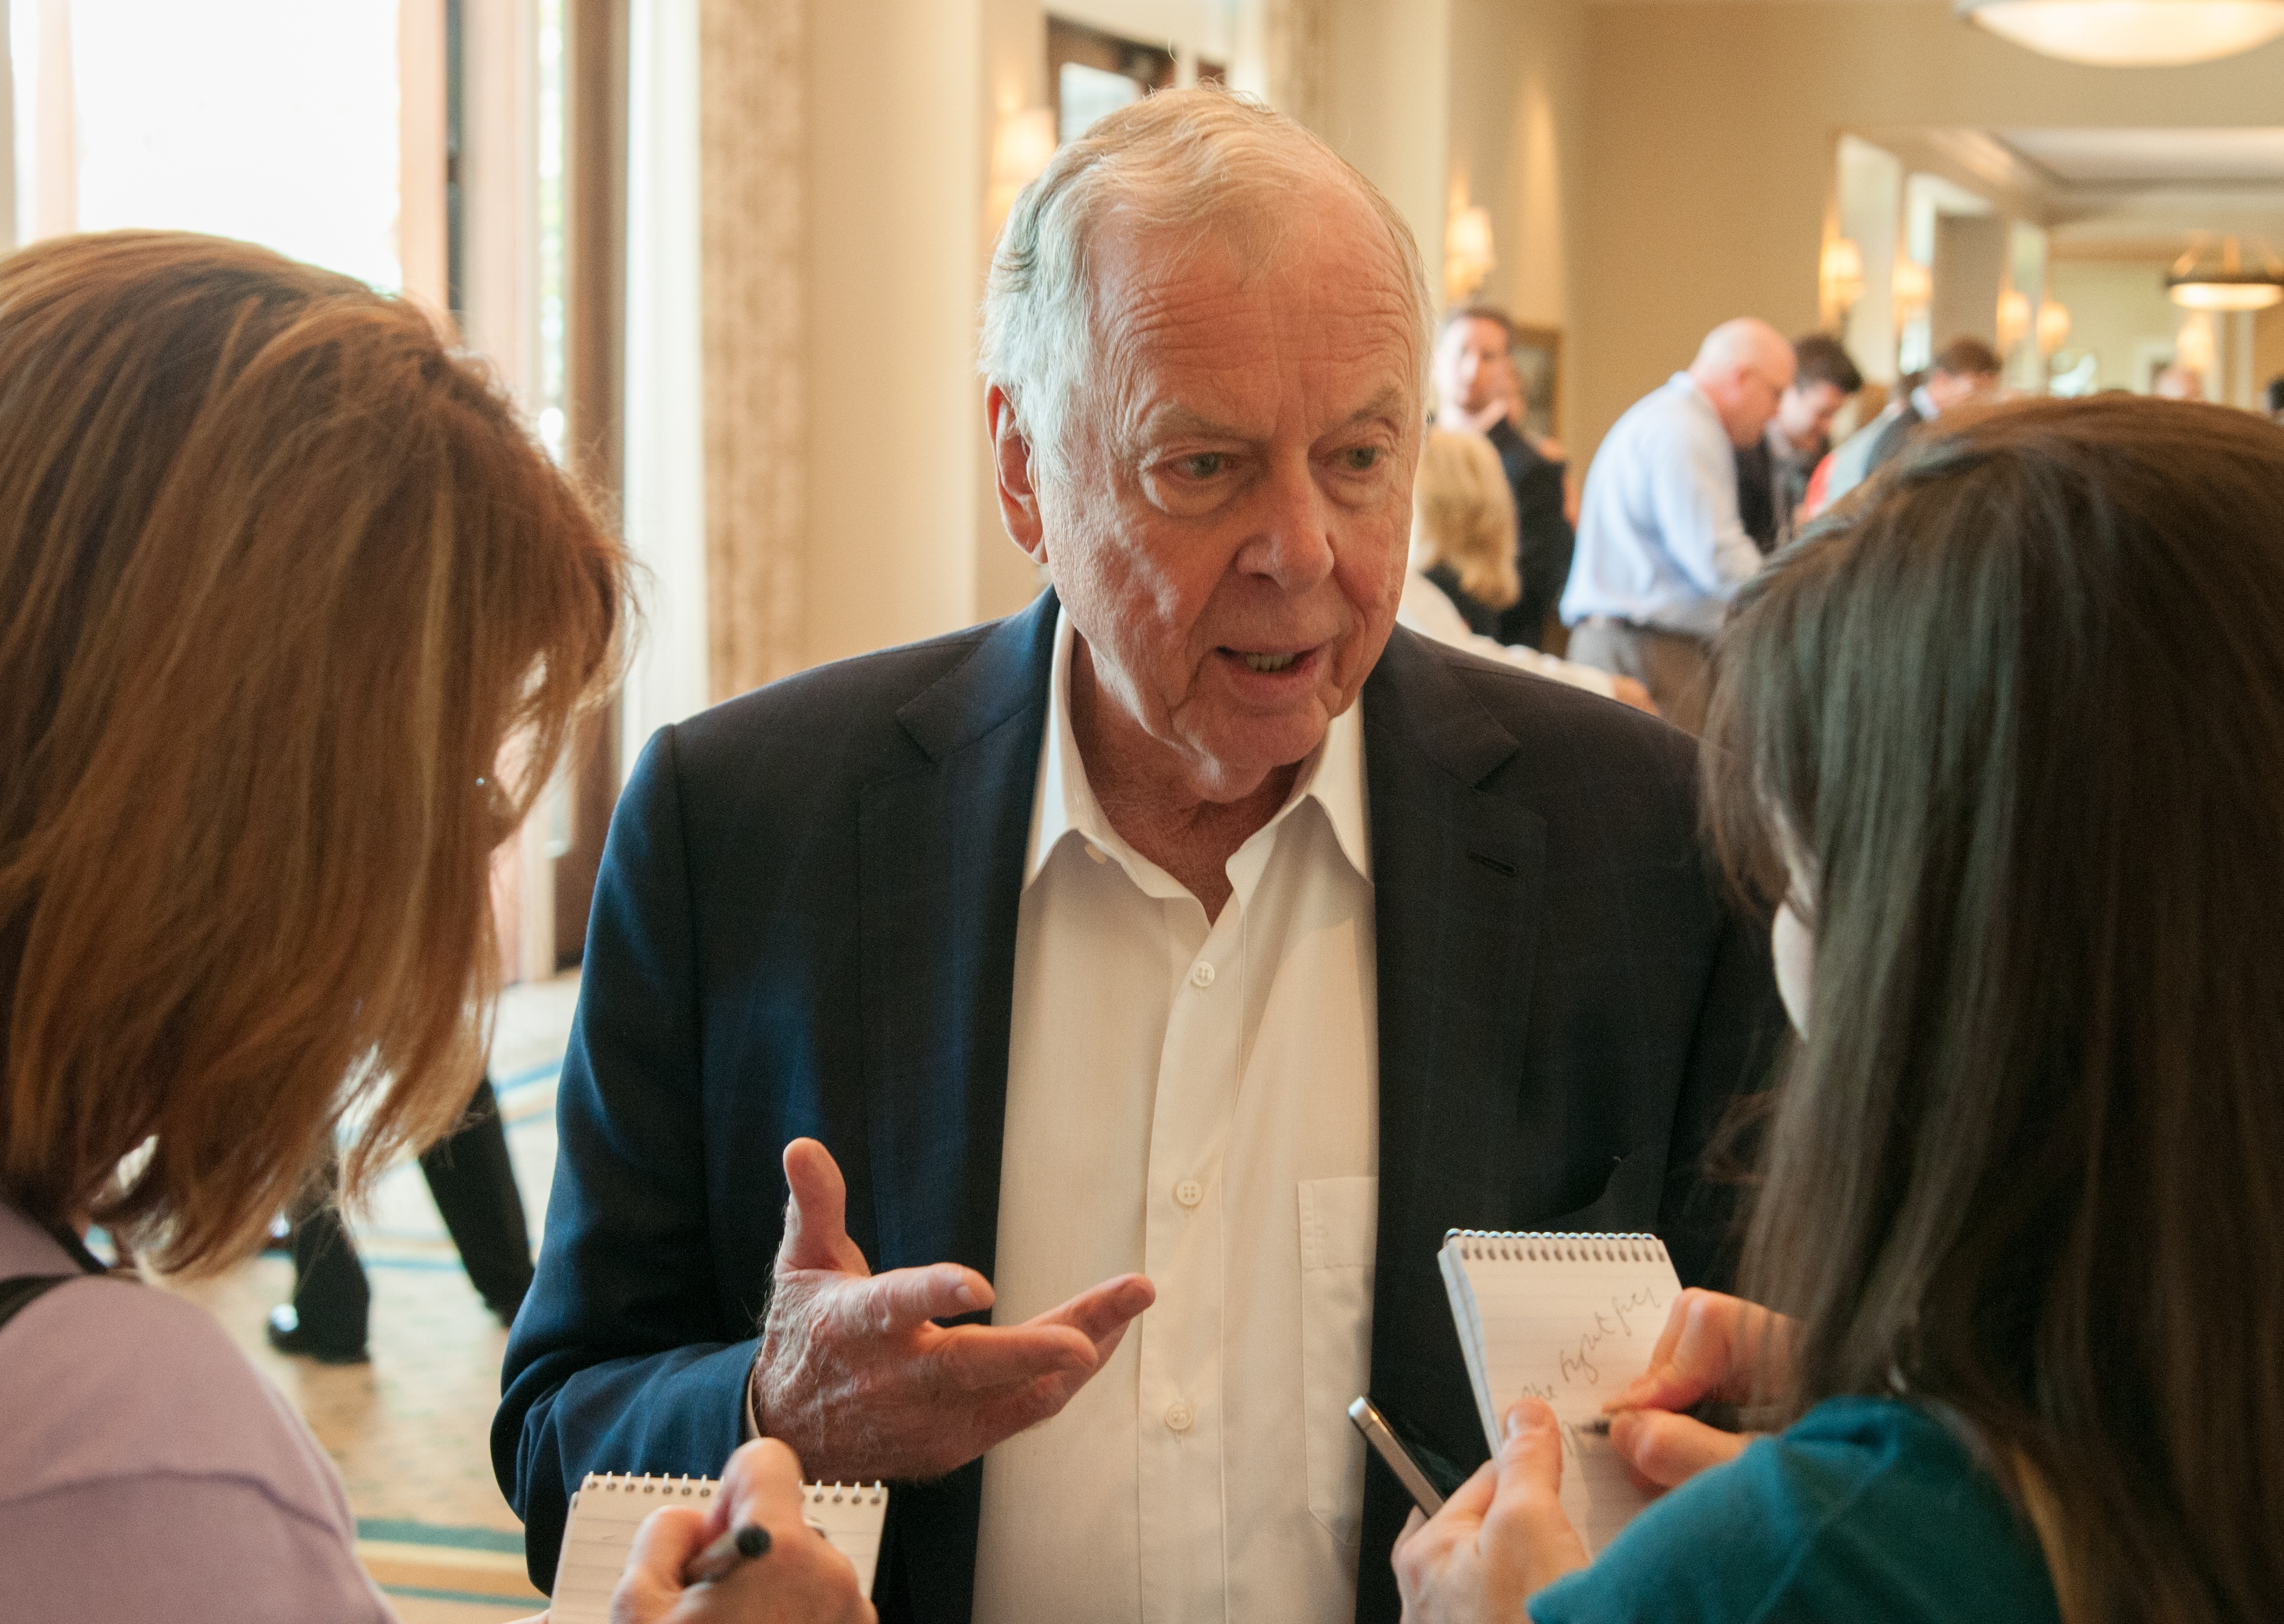 Pickens-media-Western-Gov-meeting-2013.jpg""